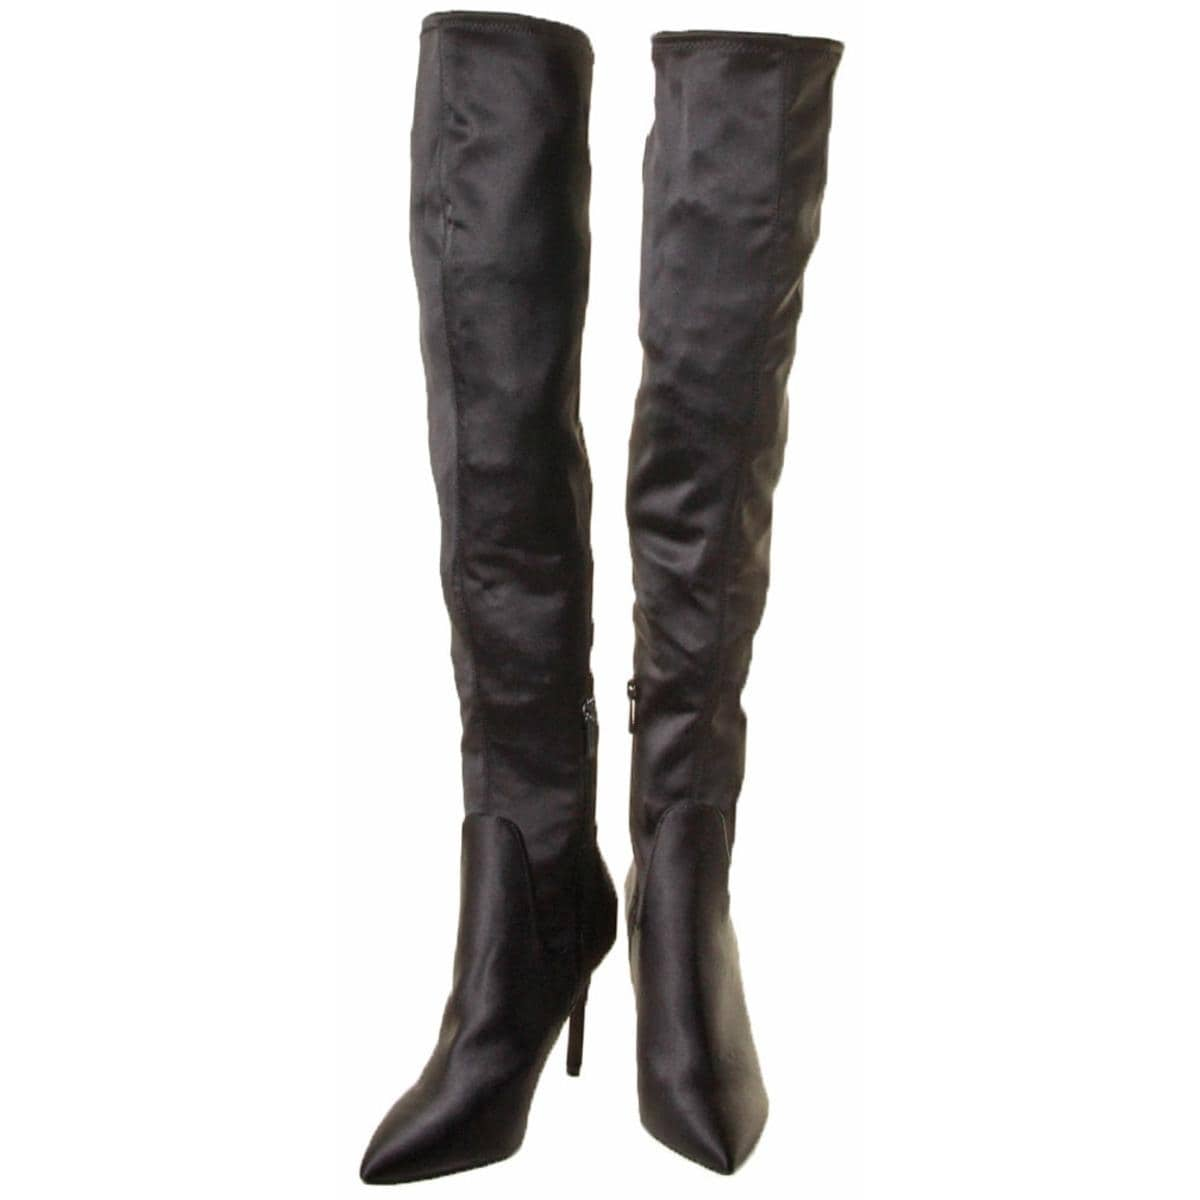 c92e40b0c11 Shop Jessica Simpson Womens Londy Over-The-Knee Boots Pointed Toe Fashion -  Ships To Canada - Overstock - 22581792